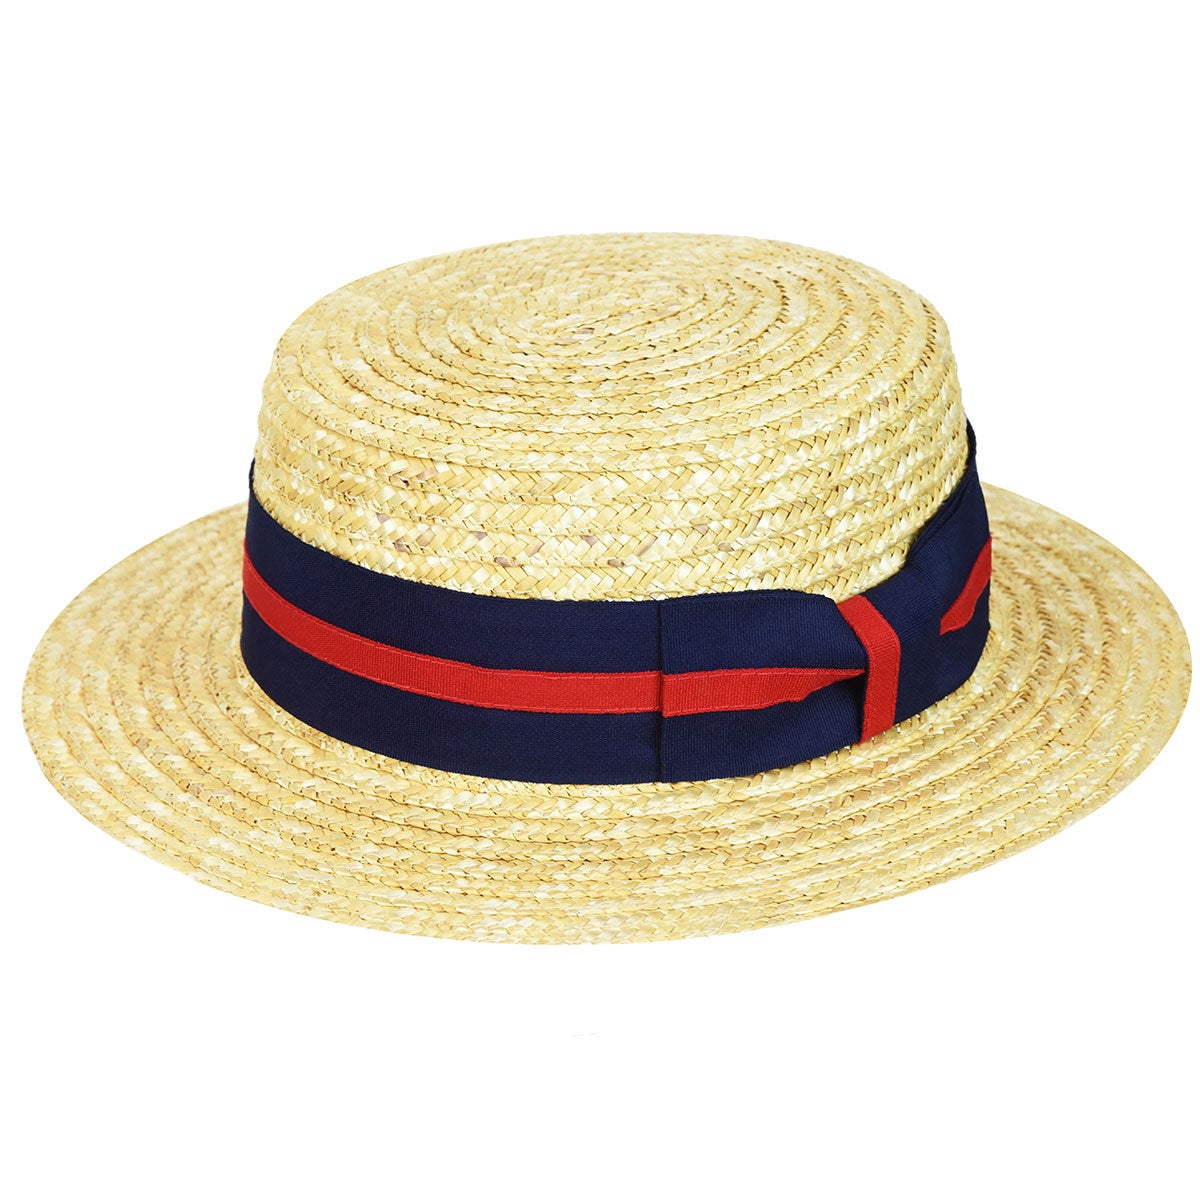 Country Gentleman Straw Boater in Natural